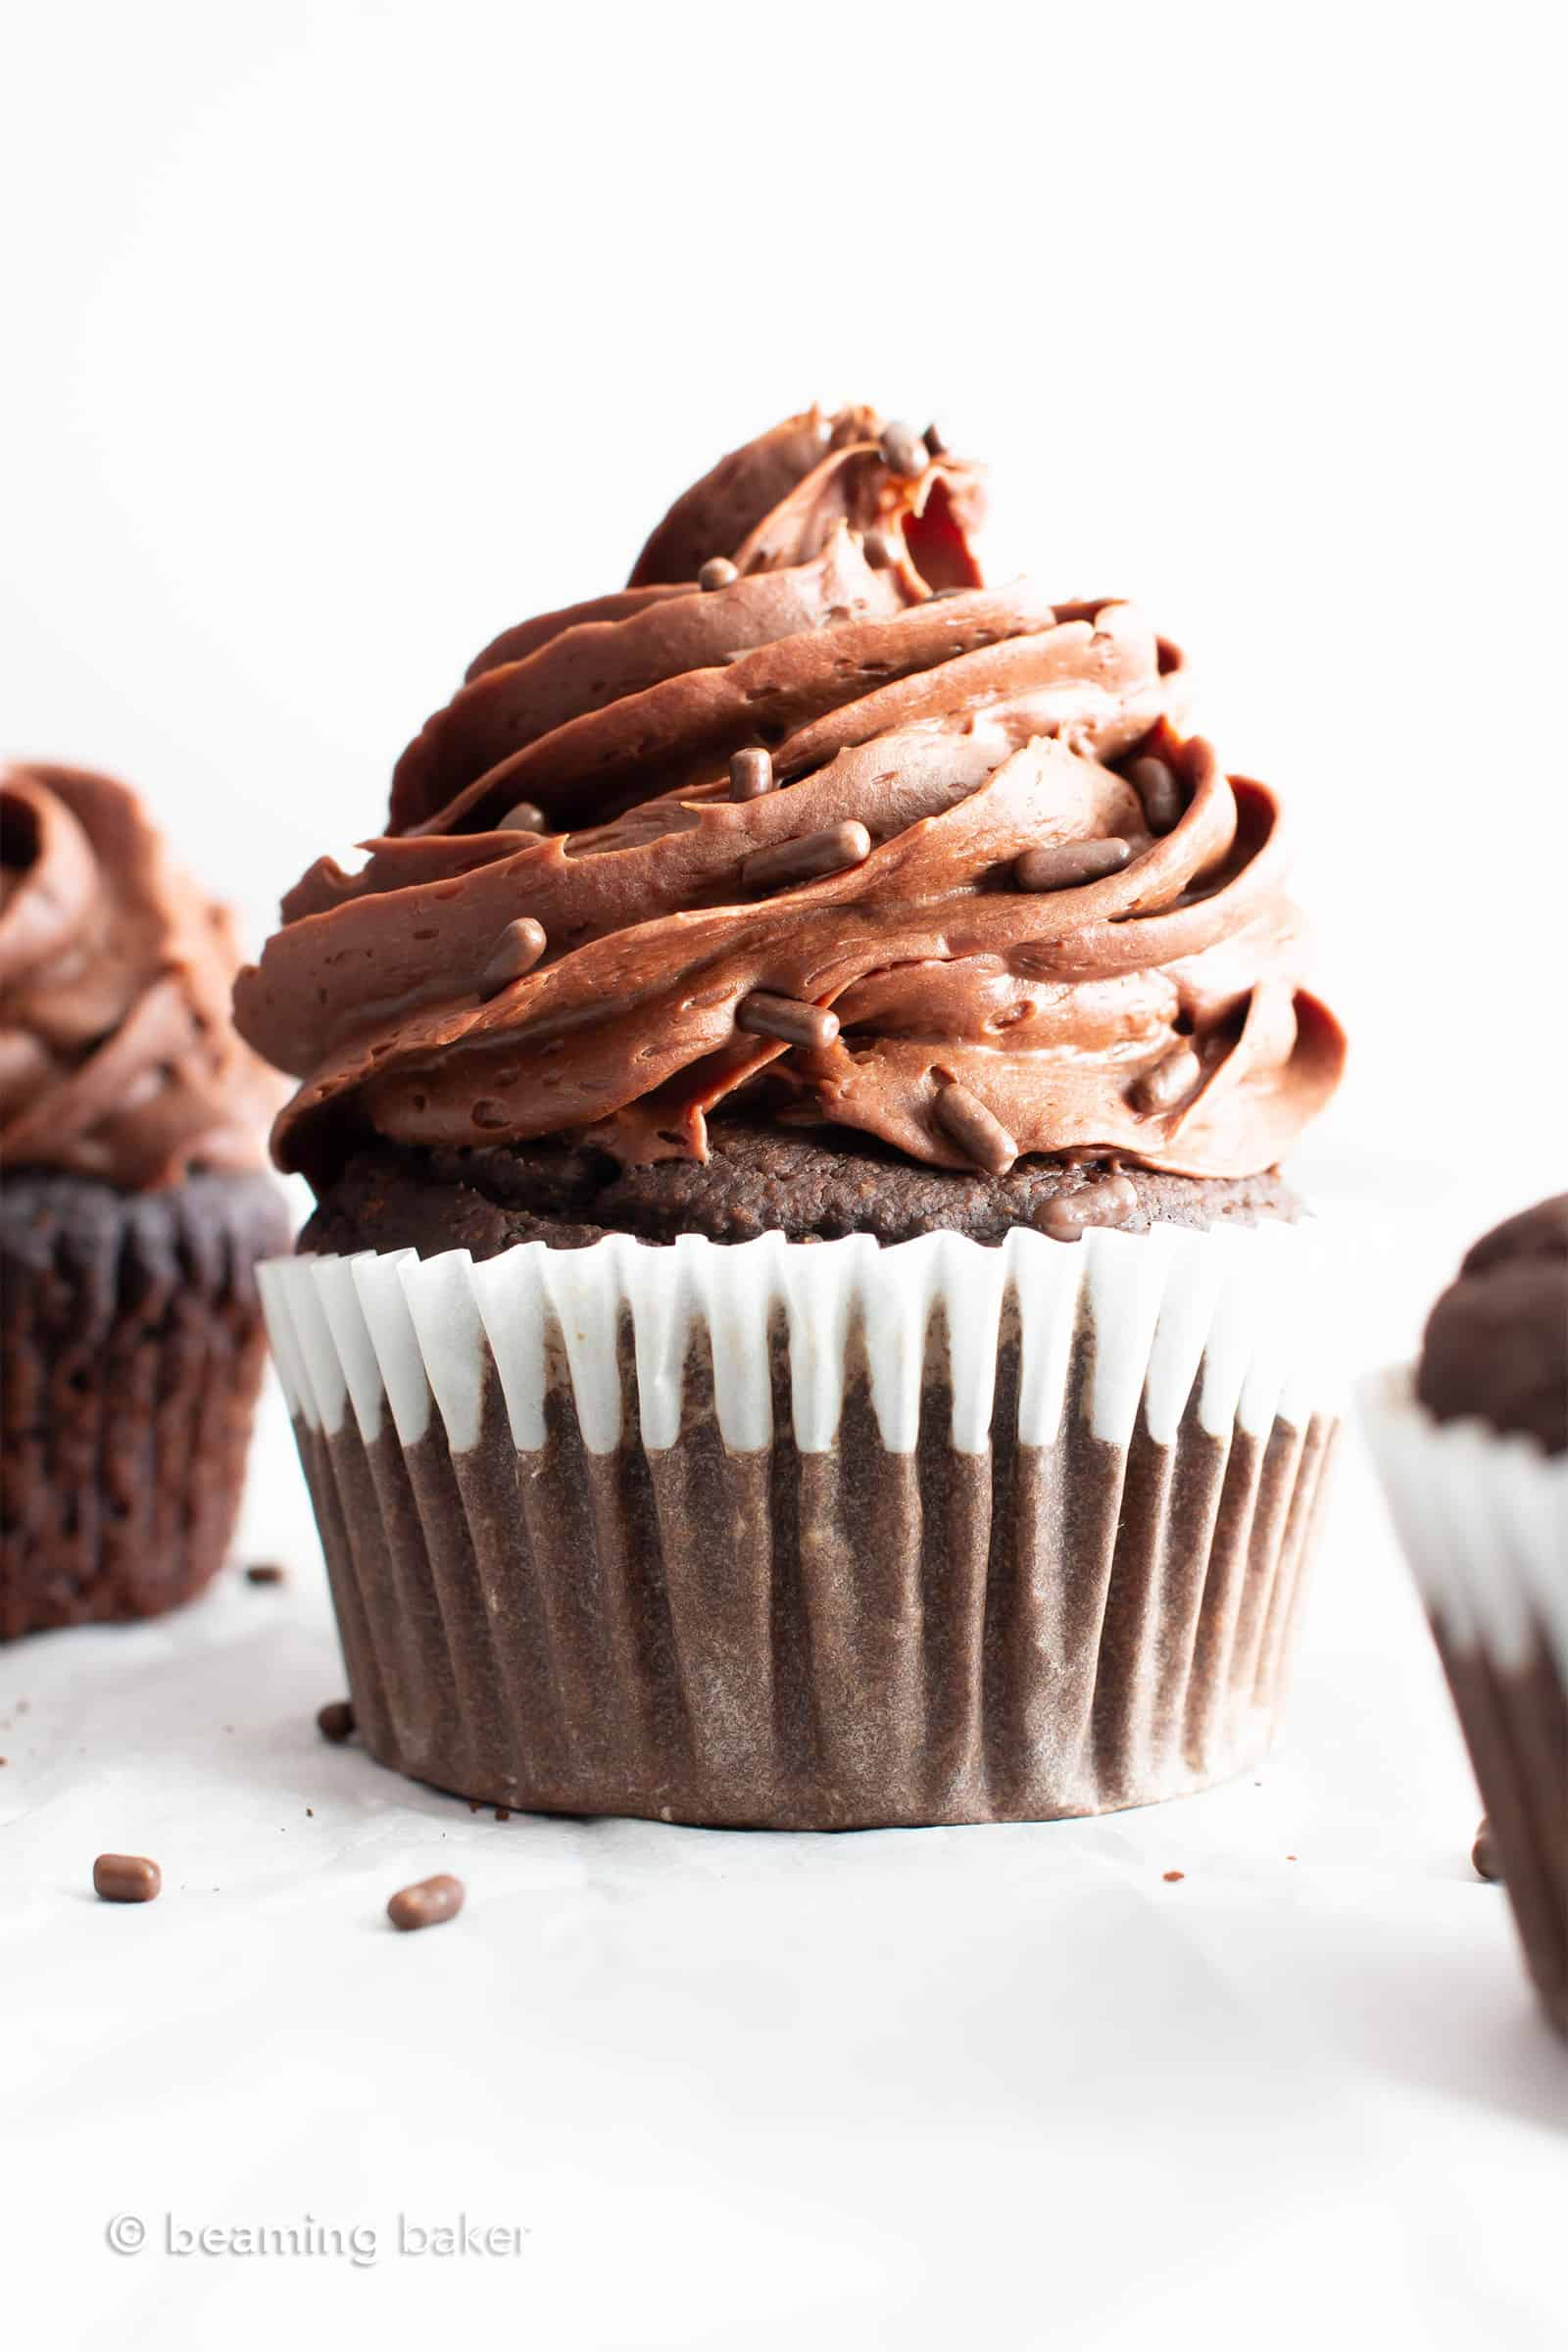 Vegan Gluten Free Chocolate Cupcakes Gf Dairy Free Healthy Refined Sugar Free Beaming Baker